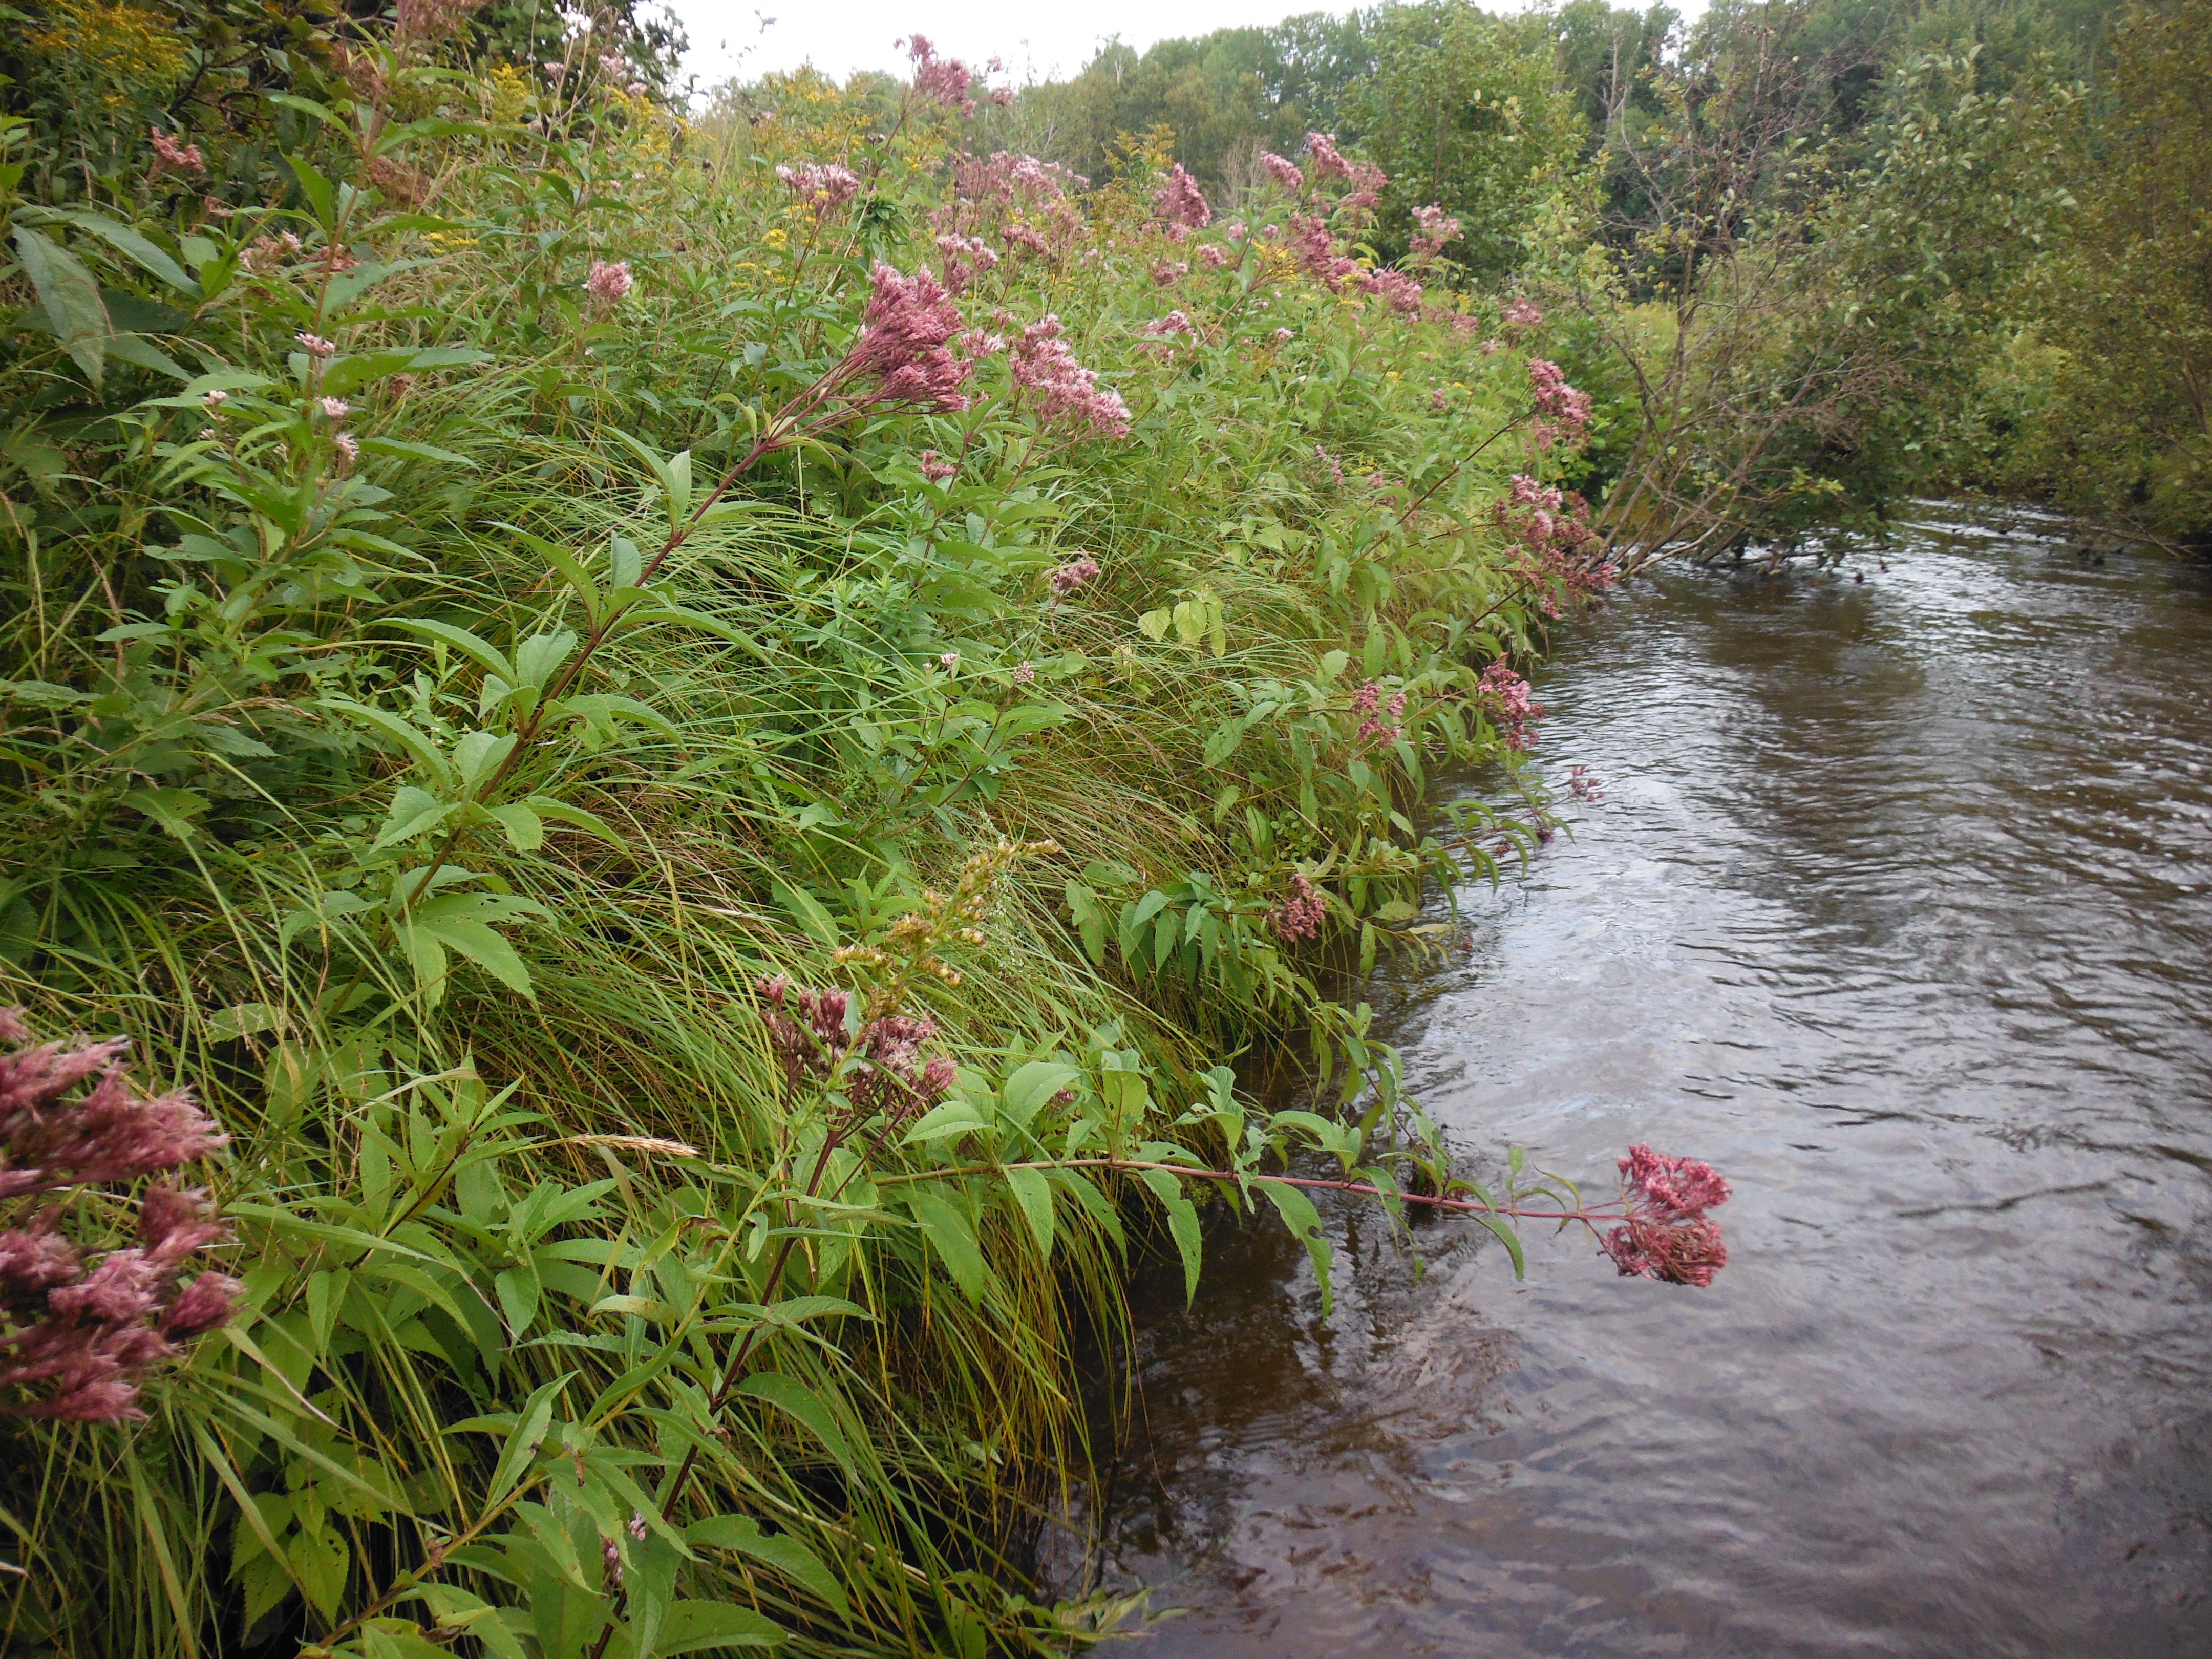 Again, this isn't 9-footer water, pull out that little 3-weight...Joe-pye-weed just past its prime